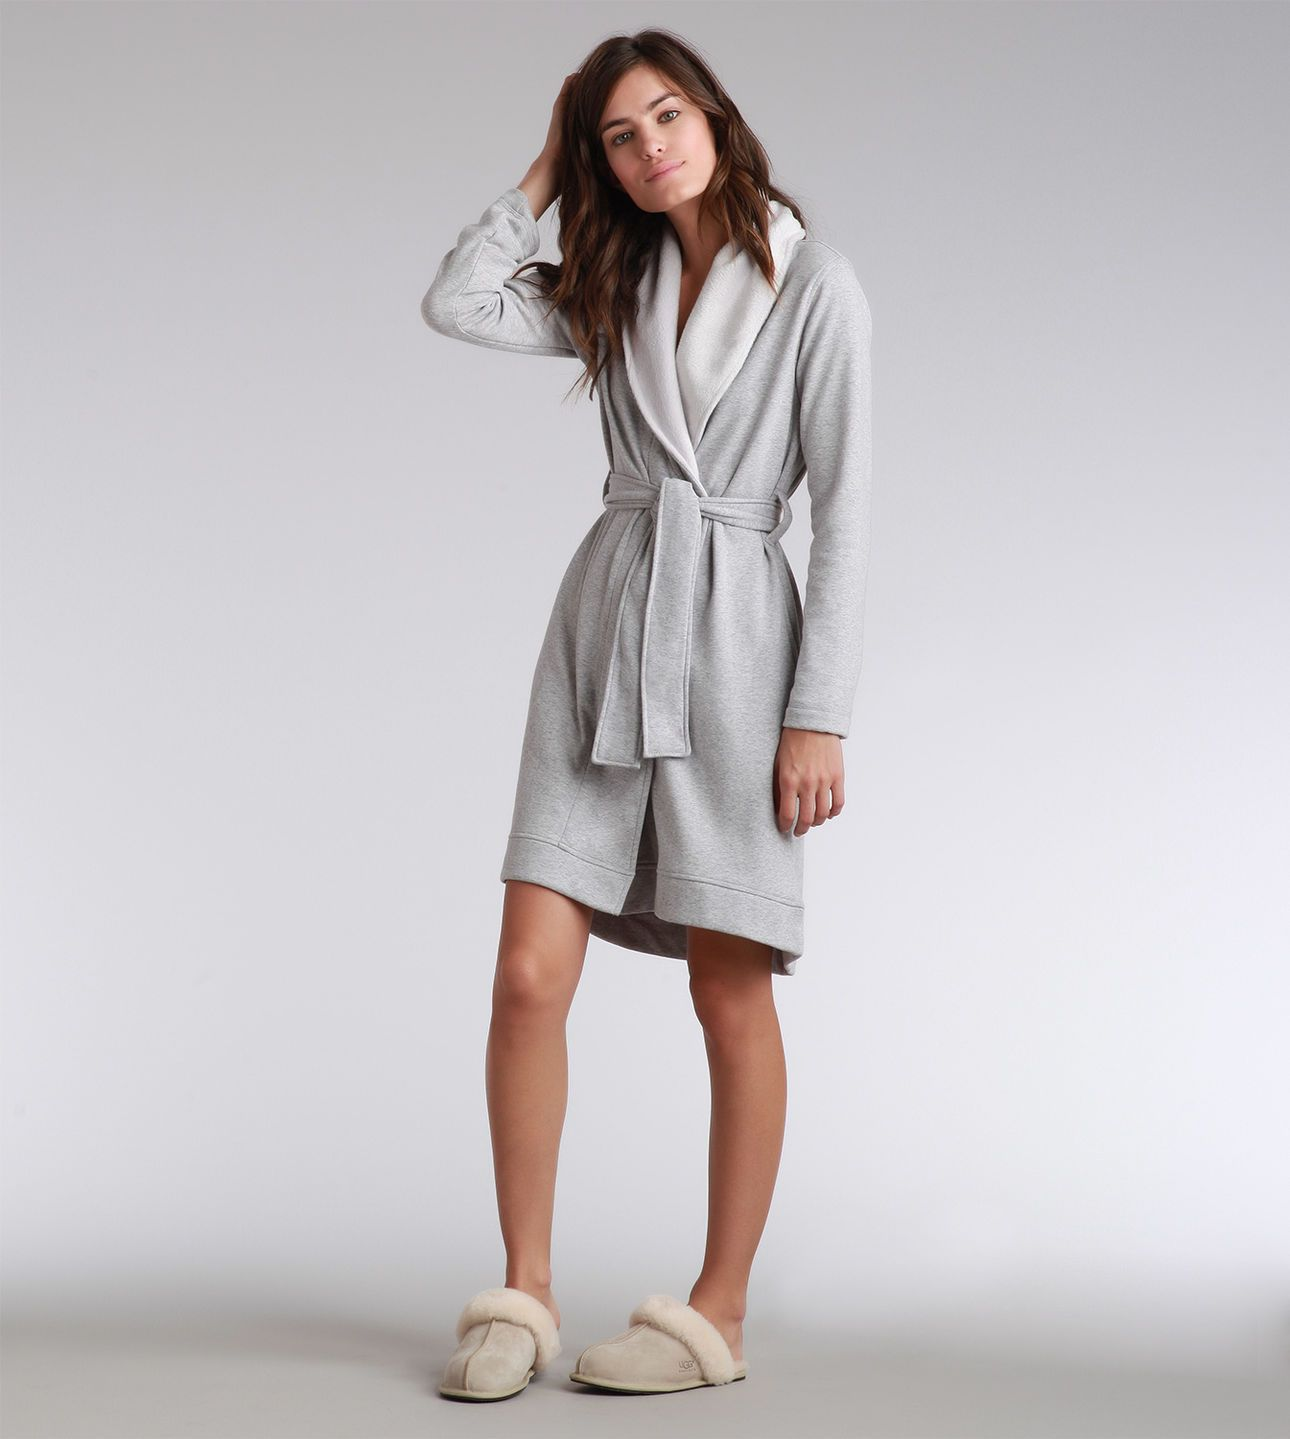 Image result for UGG Women's Blanche robe